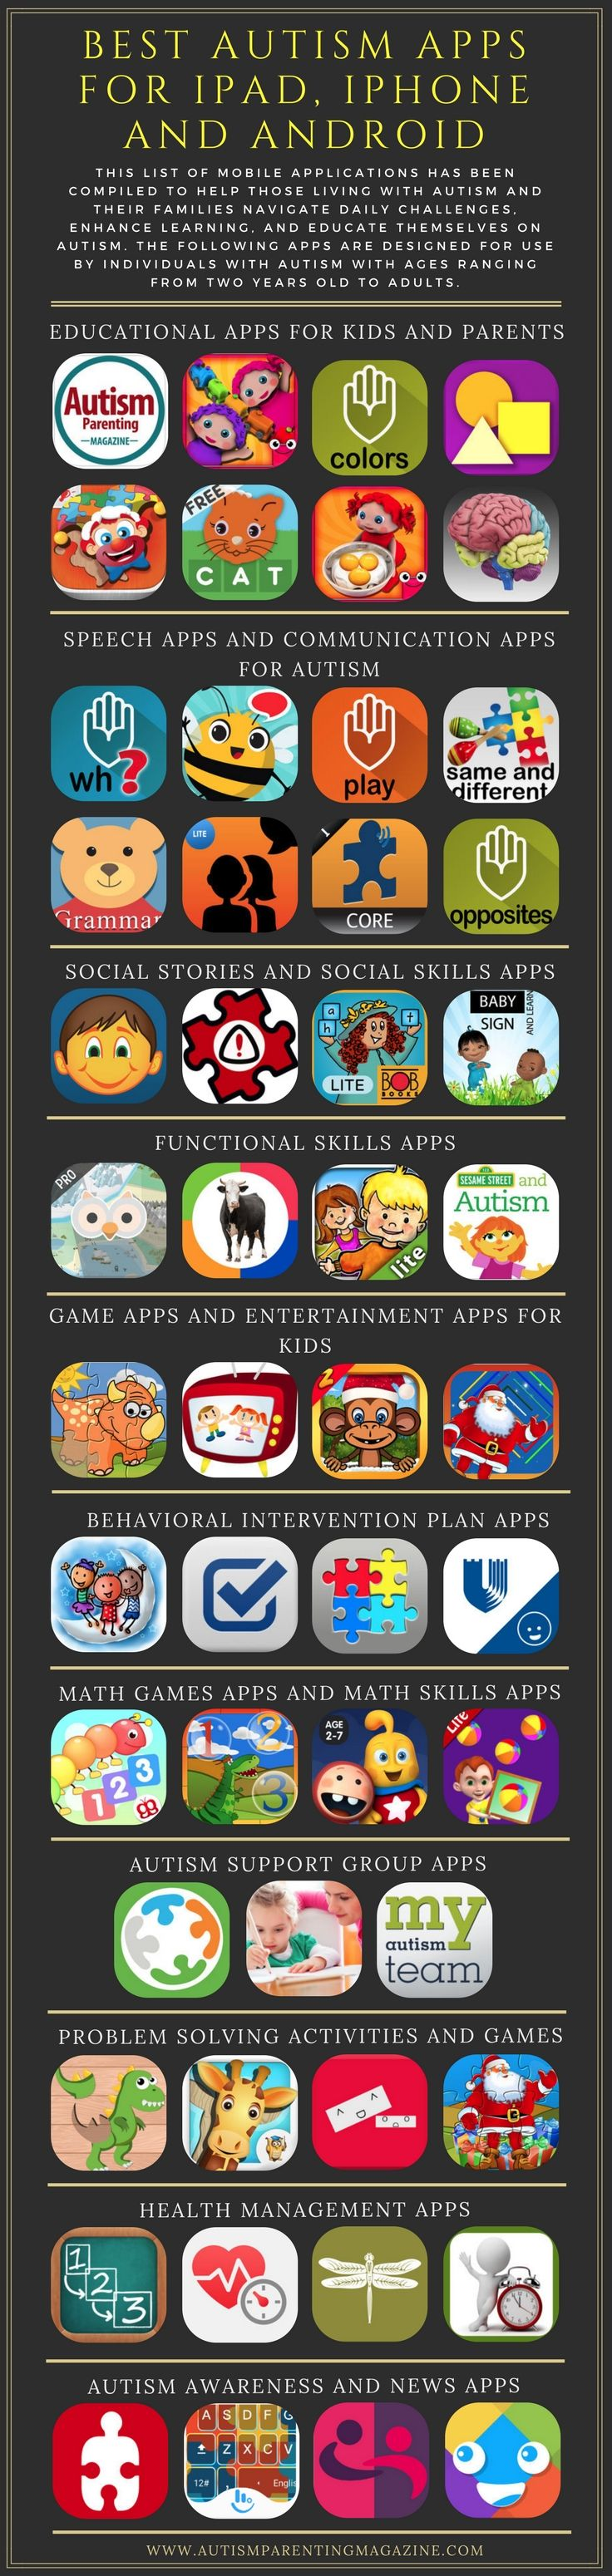 This list of mobile applications has been compiled to help those living with autism and their families navigate daily challenges, enhance learning, and educate themselves on autism.